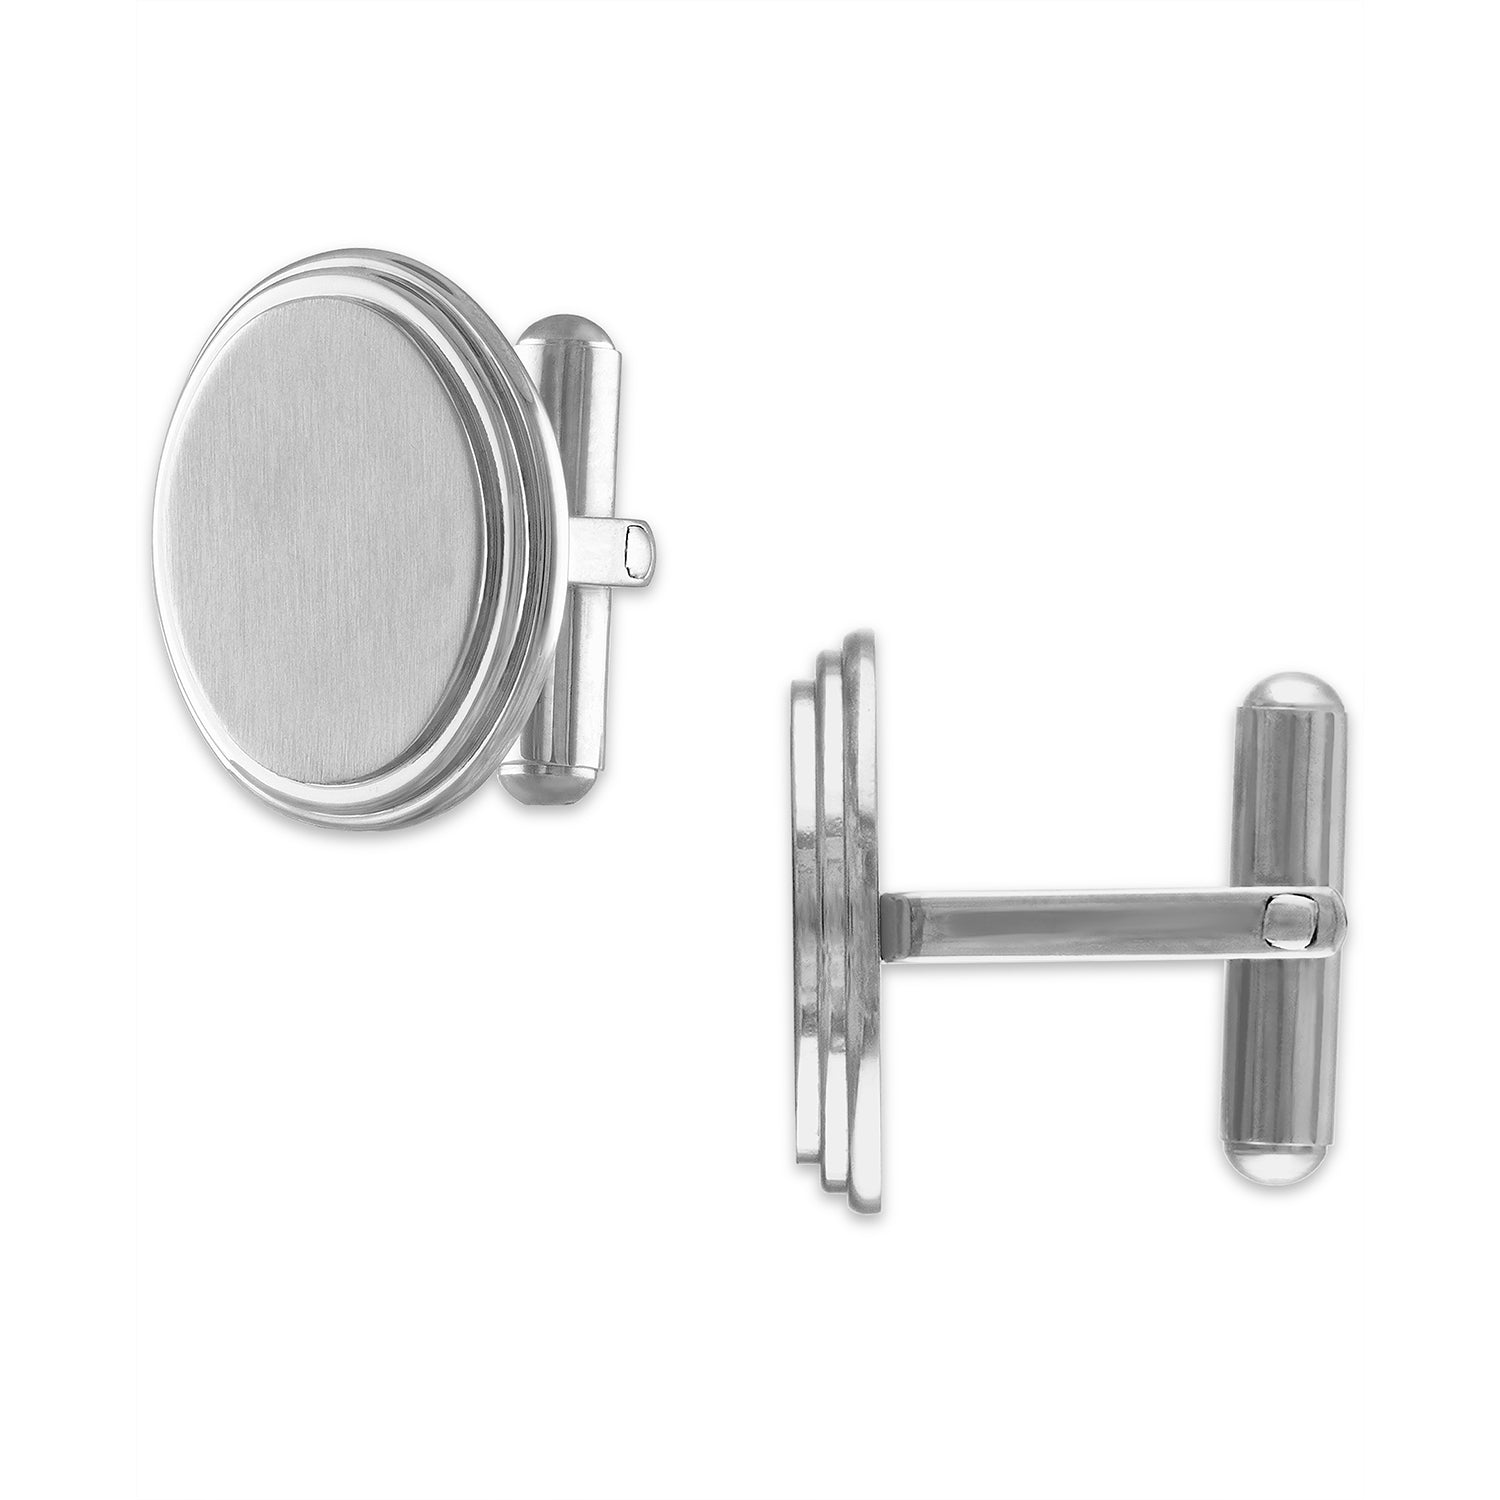 The Men's Corner Stainless Steel Oval Cufflink